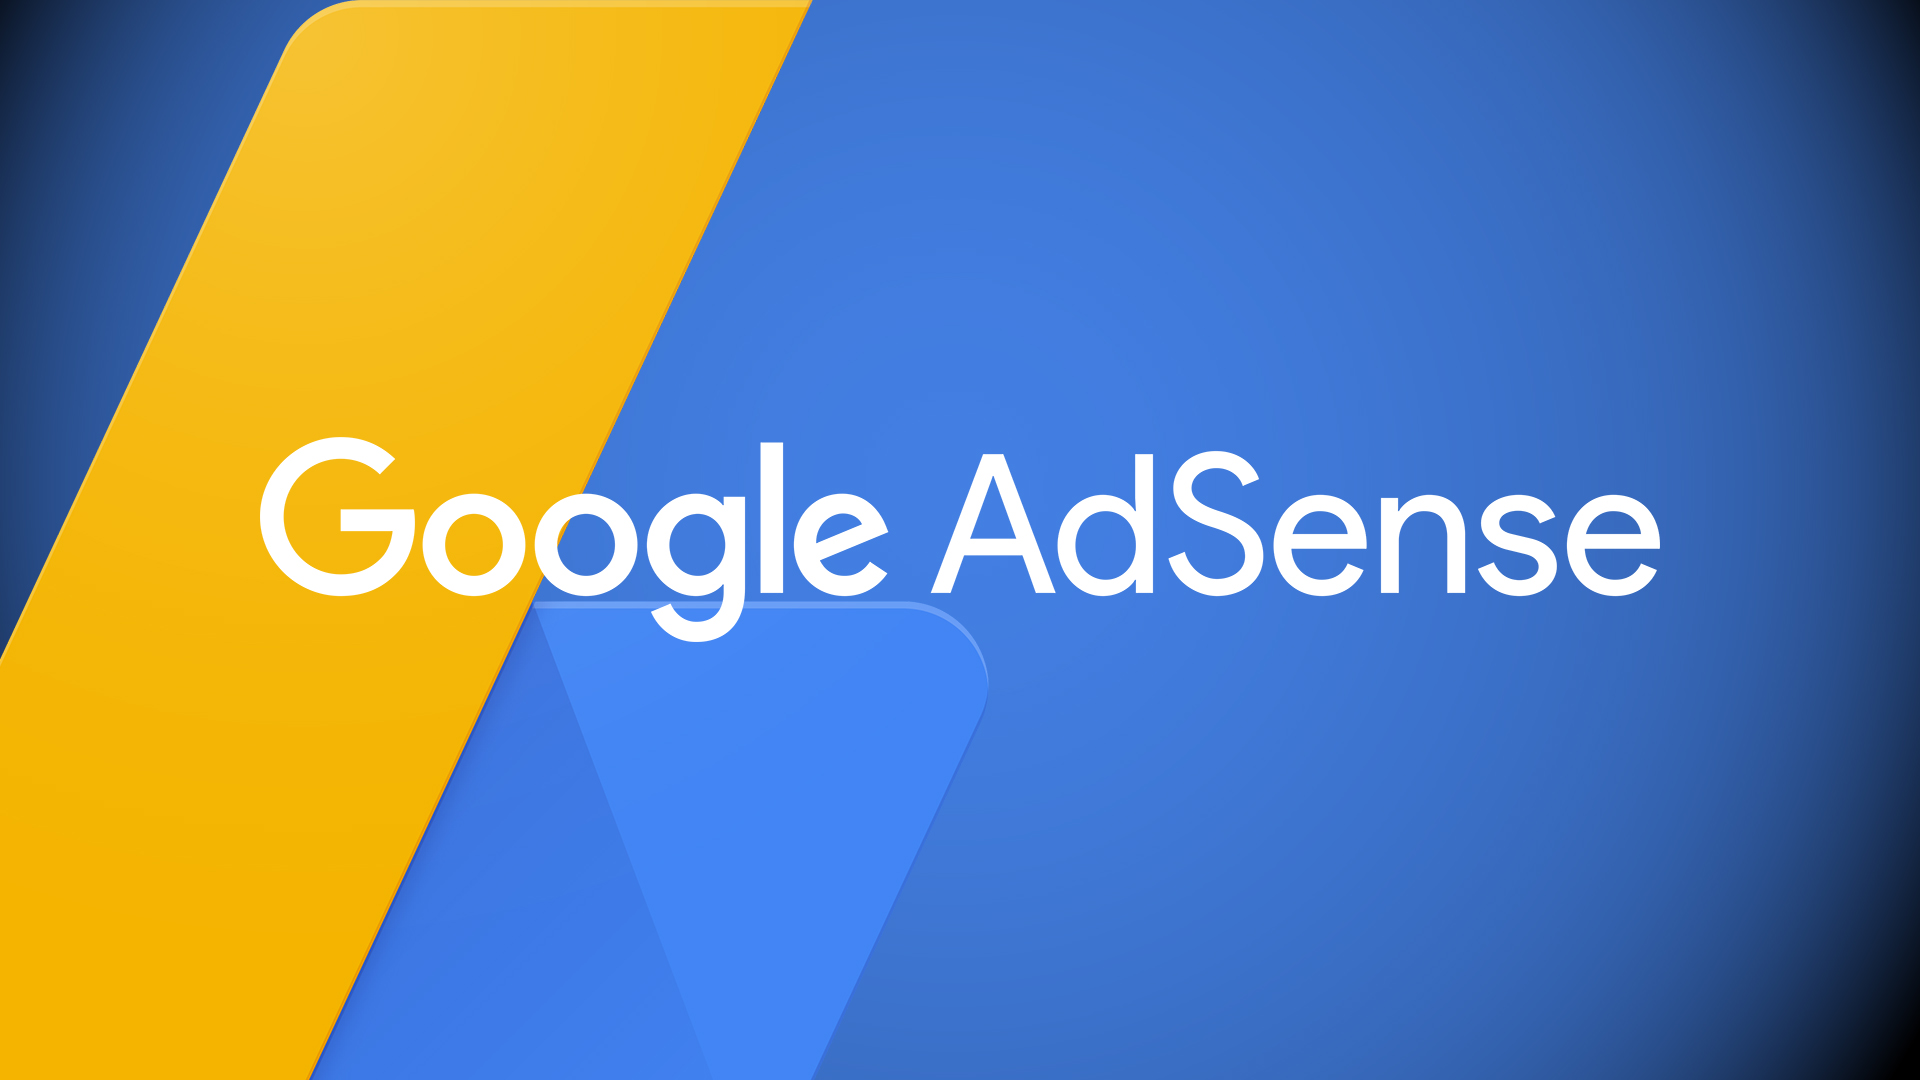 AdSense – Should Webmasters Use It Or Not?